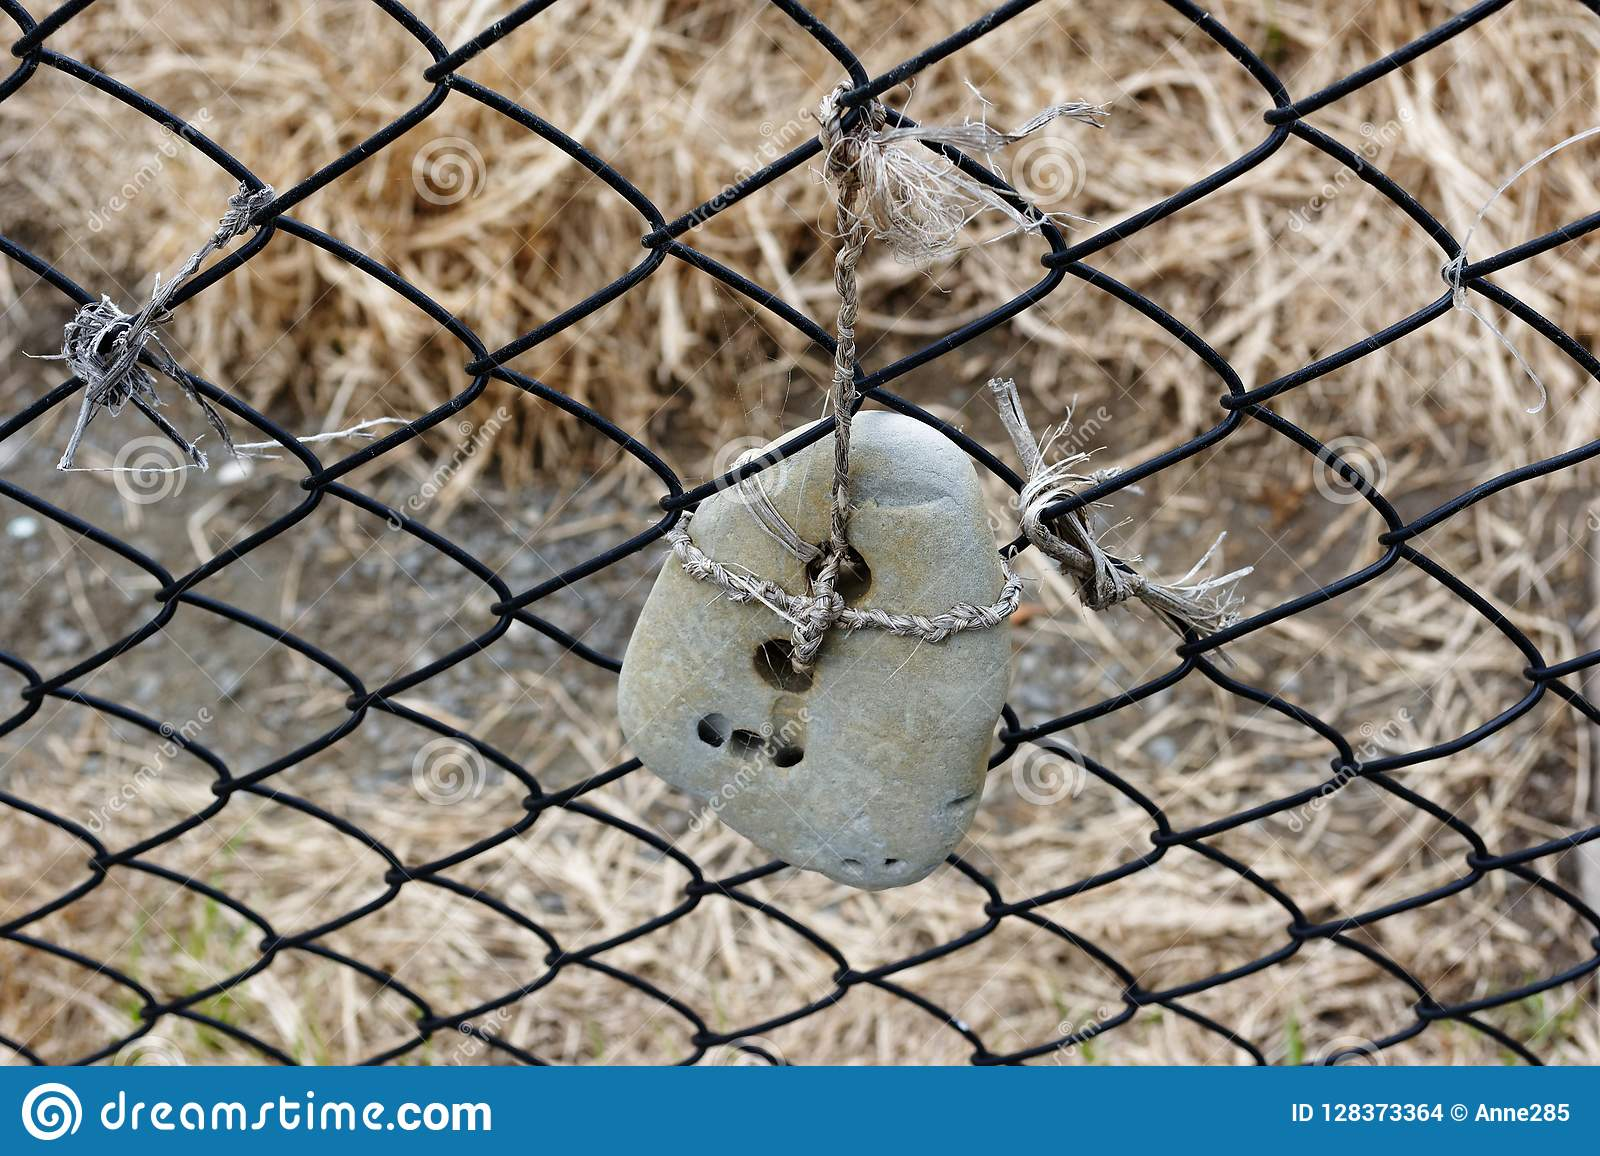 Hag Stone Photos Free Royalty Free Stock Photos From Dreamstime Throughout history, the hag stone has been thought of as one of the most spiritual stones available. https www dreamstime com hag stone hanging fence cord holes stone lucky hag stone hanging fence beach image128373364